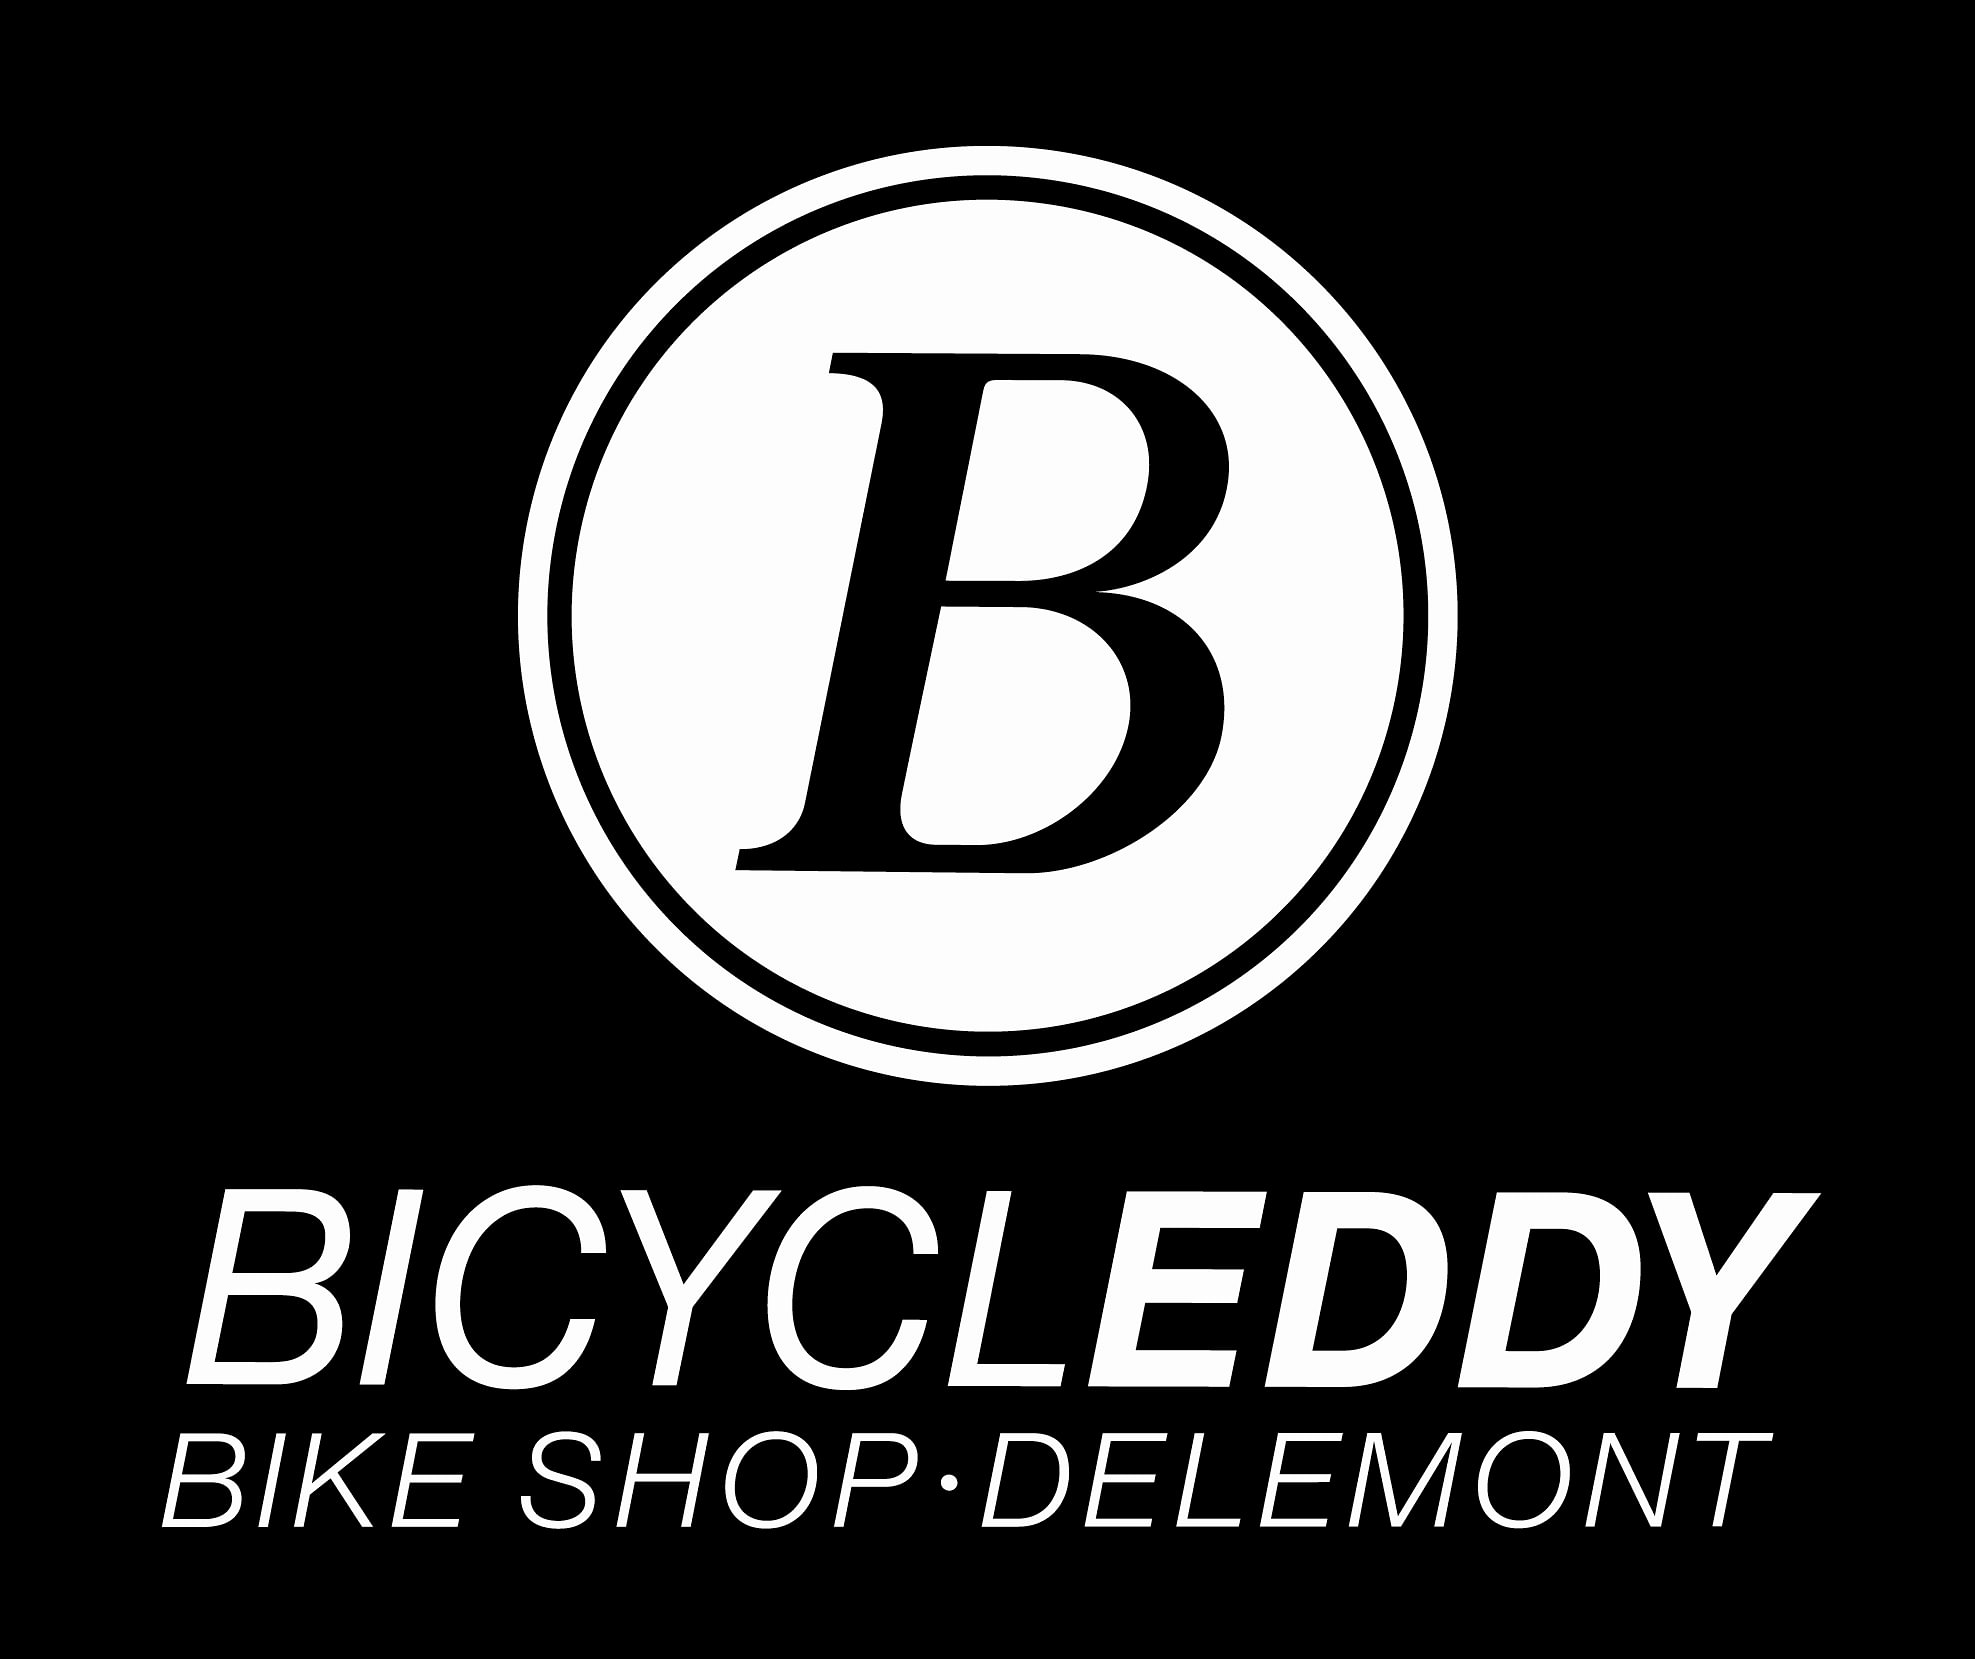 Bicycleddy